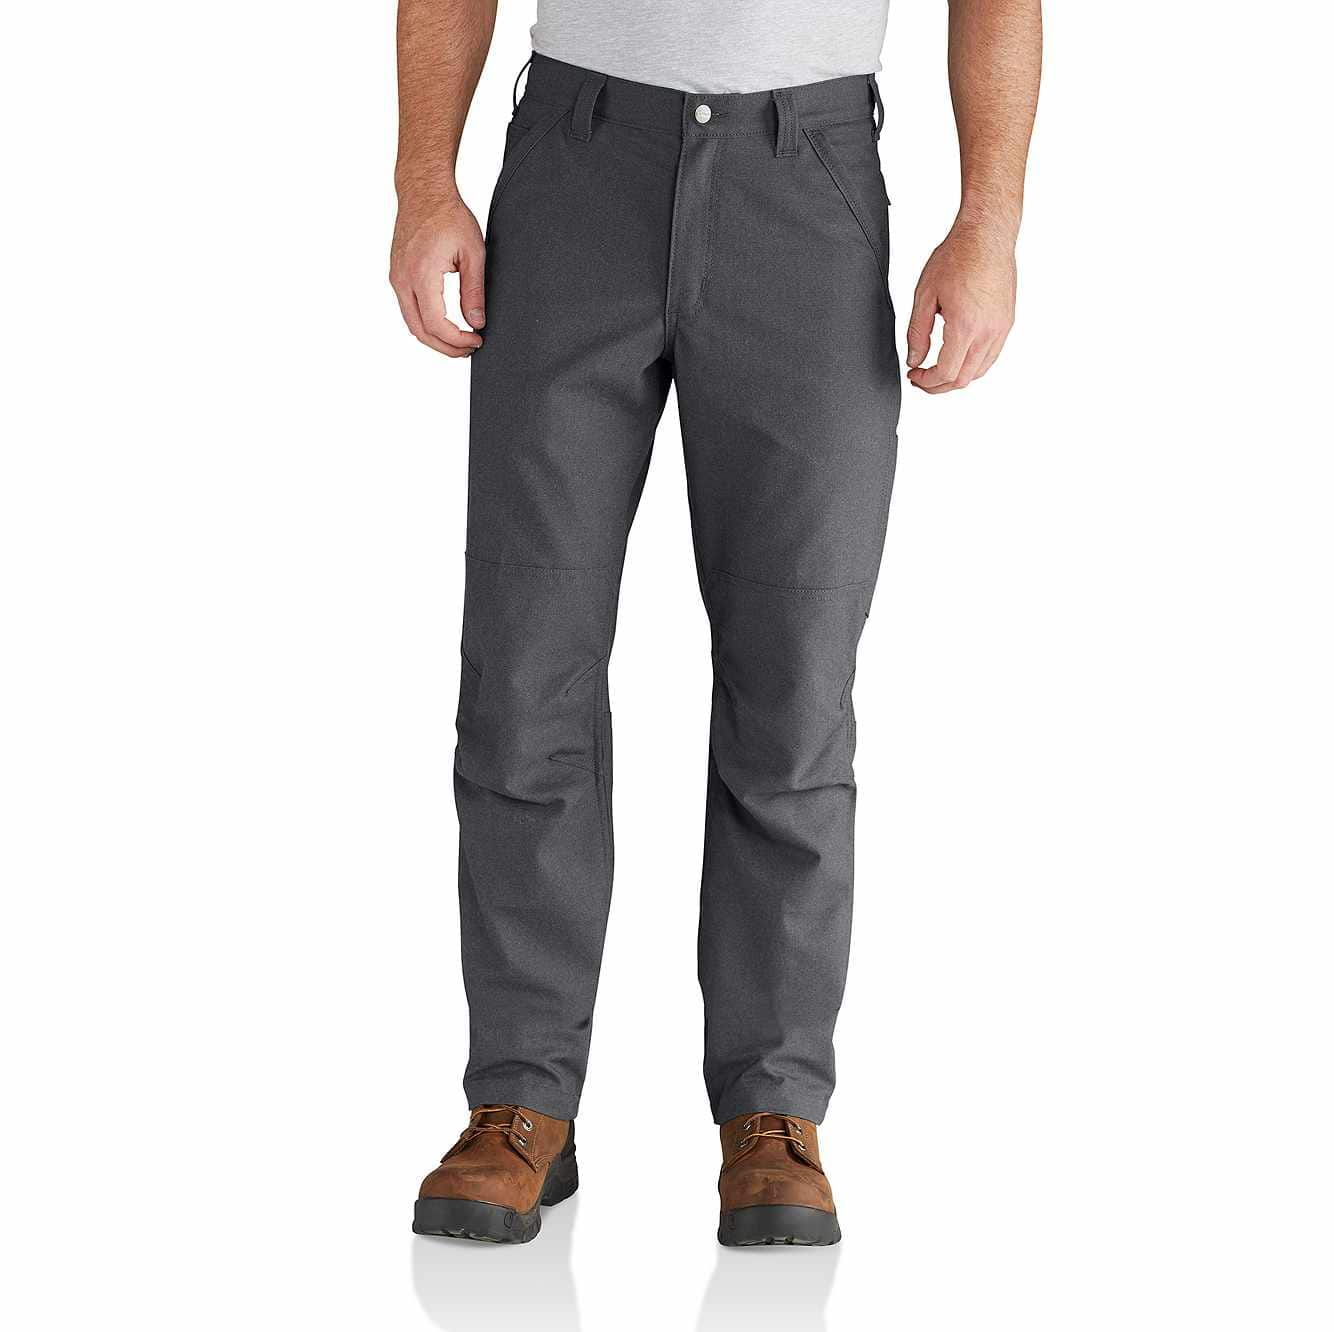 Picture of Full Swing® Water-Repellent Cryder Work Pant 2.0 in Shadow